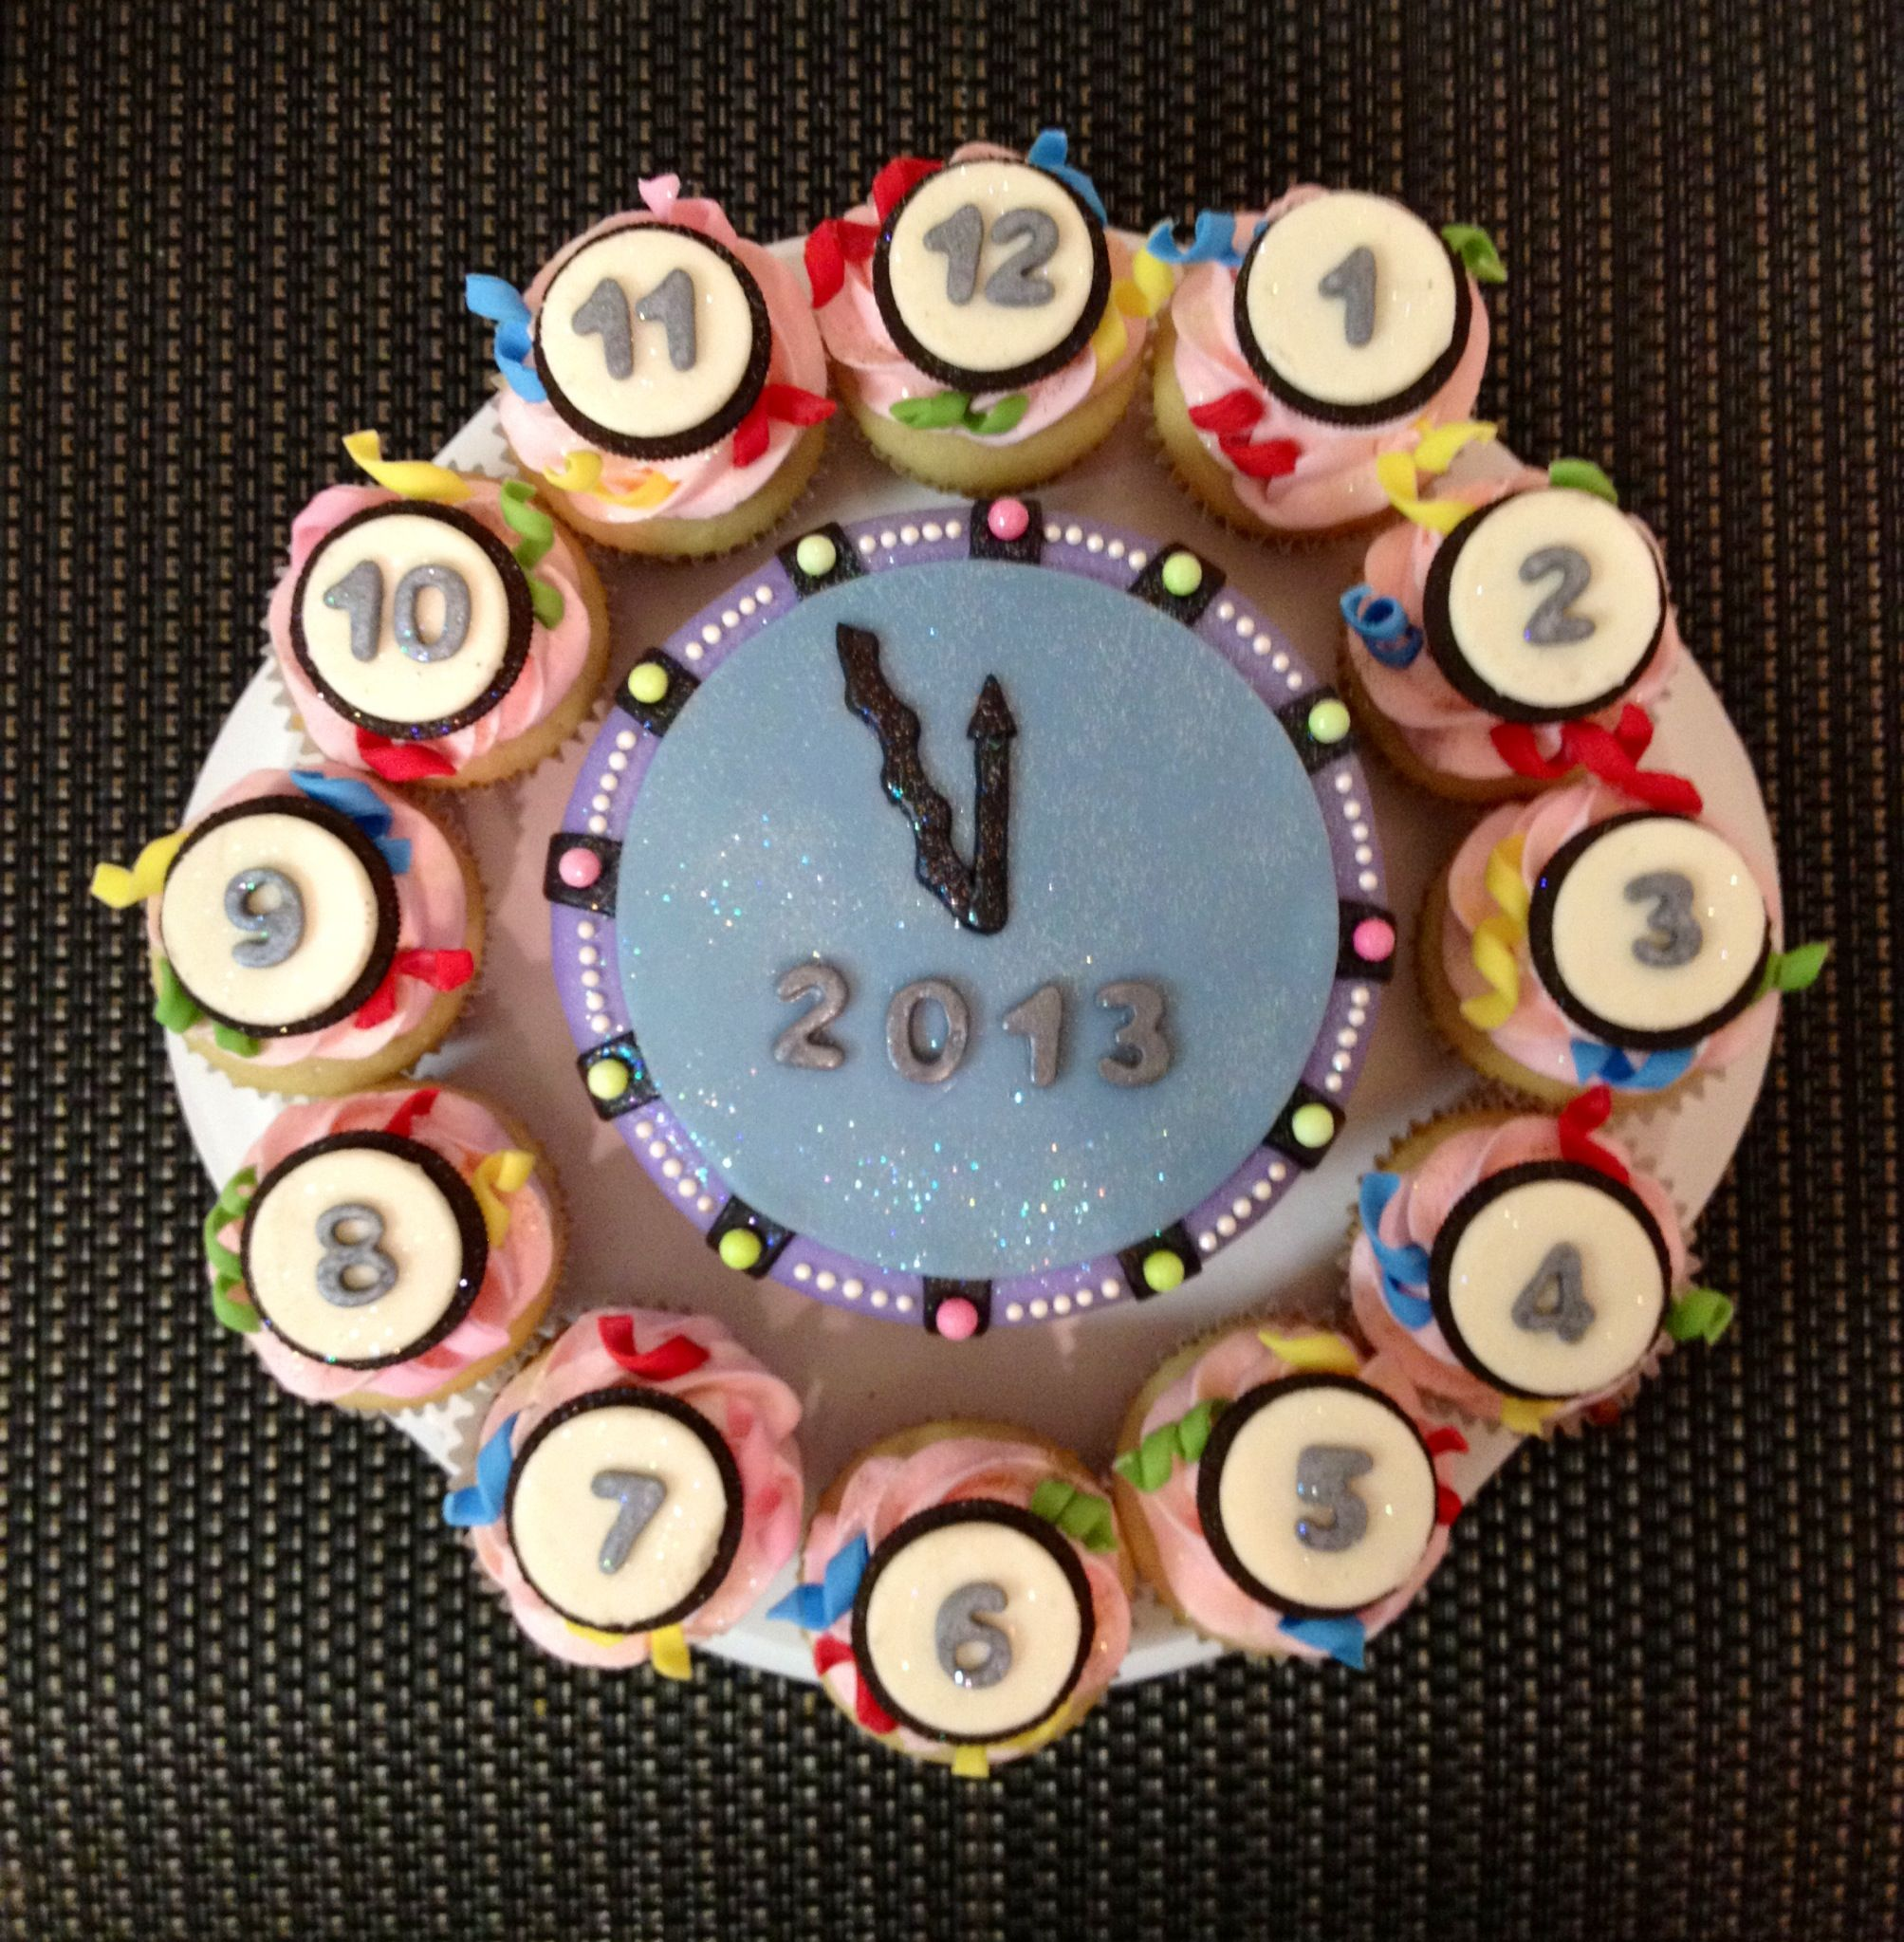 Happy New Year New Years Eve Count Down Clock Chocolate